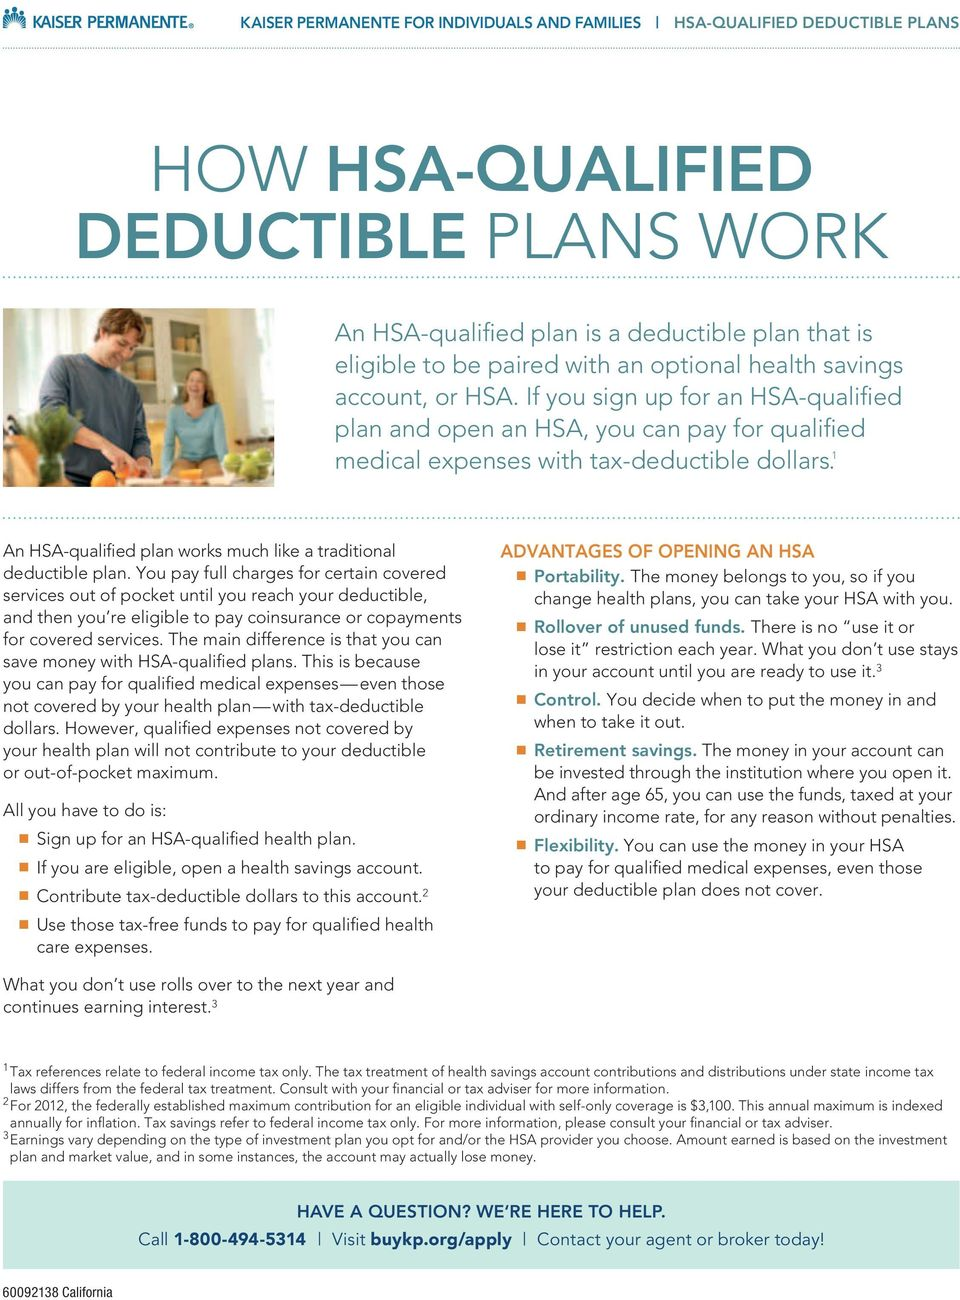 1 An HSA-qualified plan works much like a traditional deductible plan.